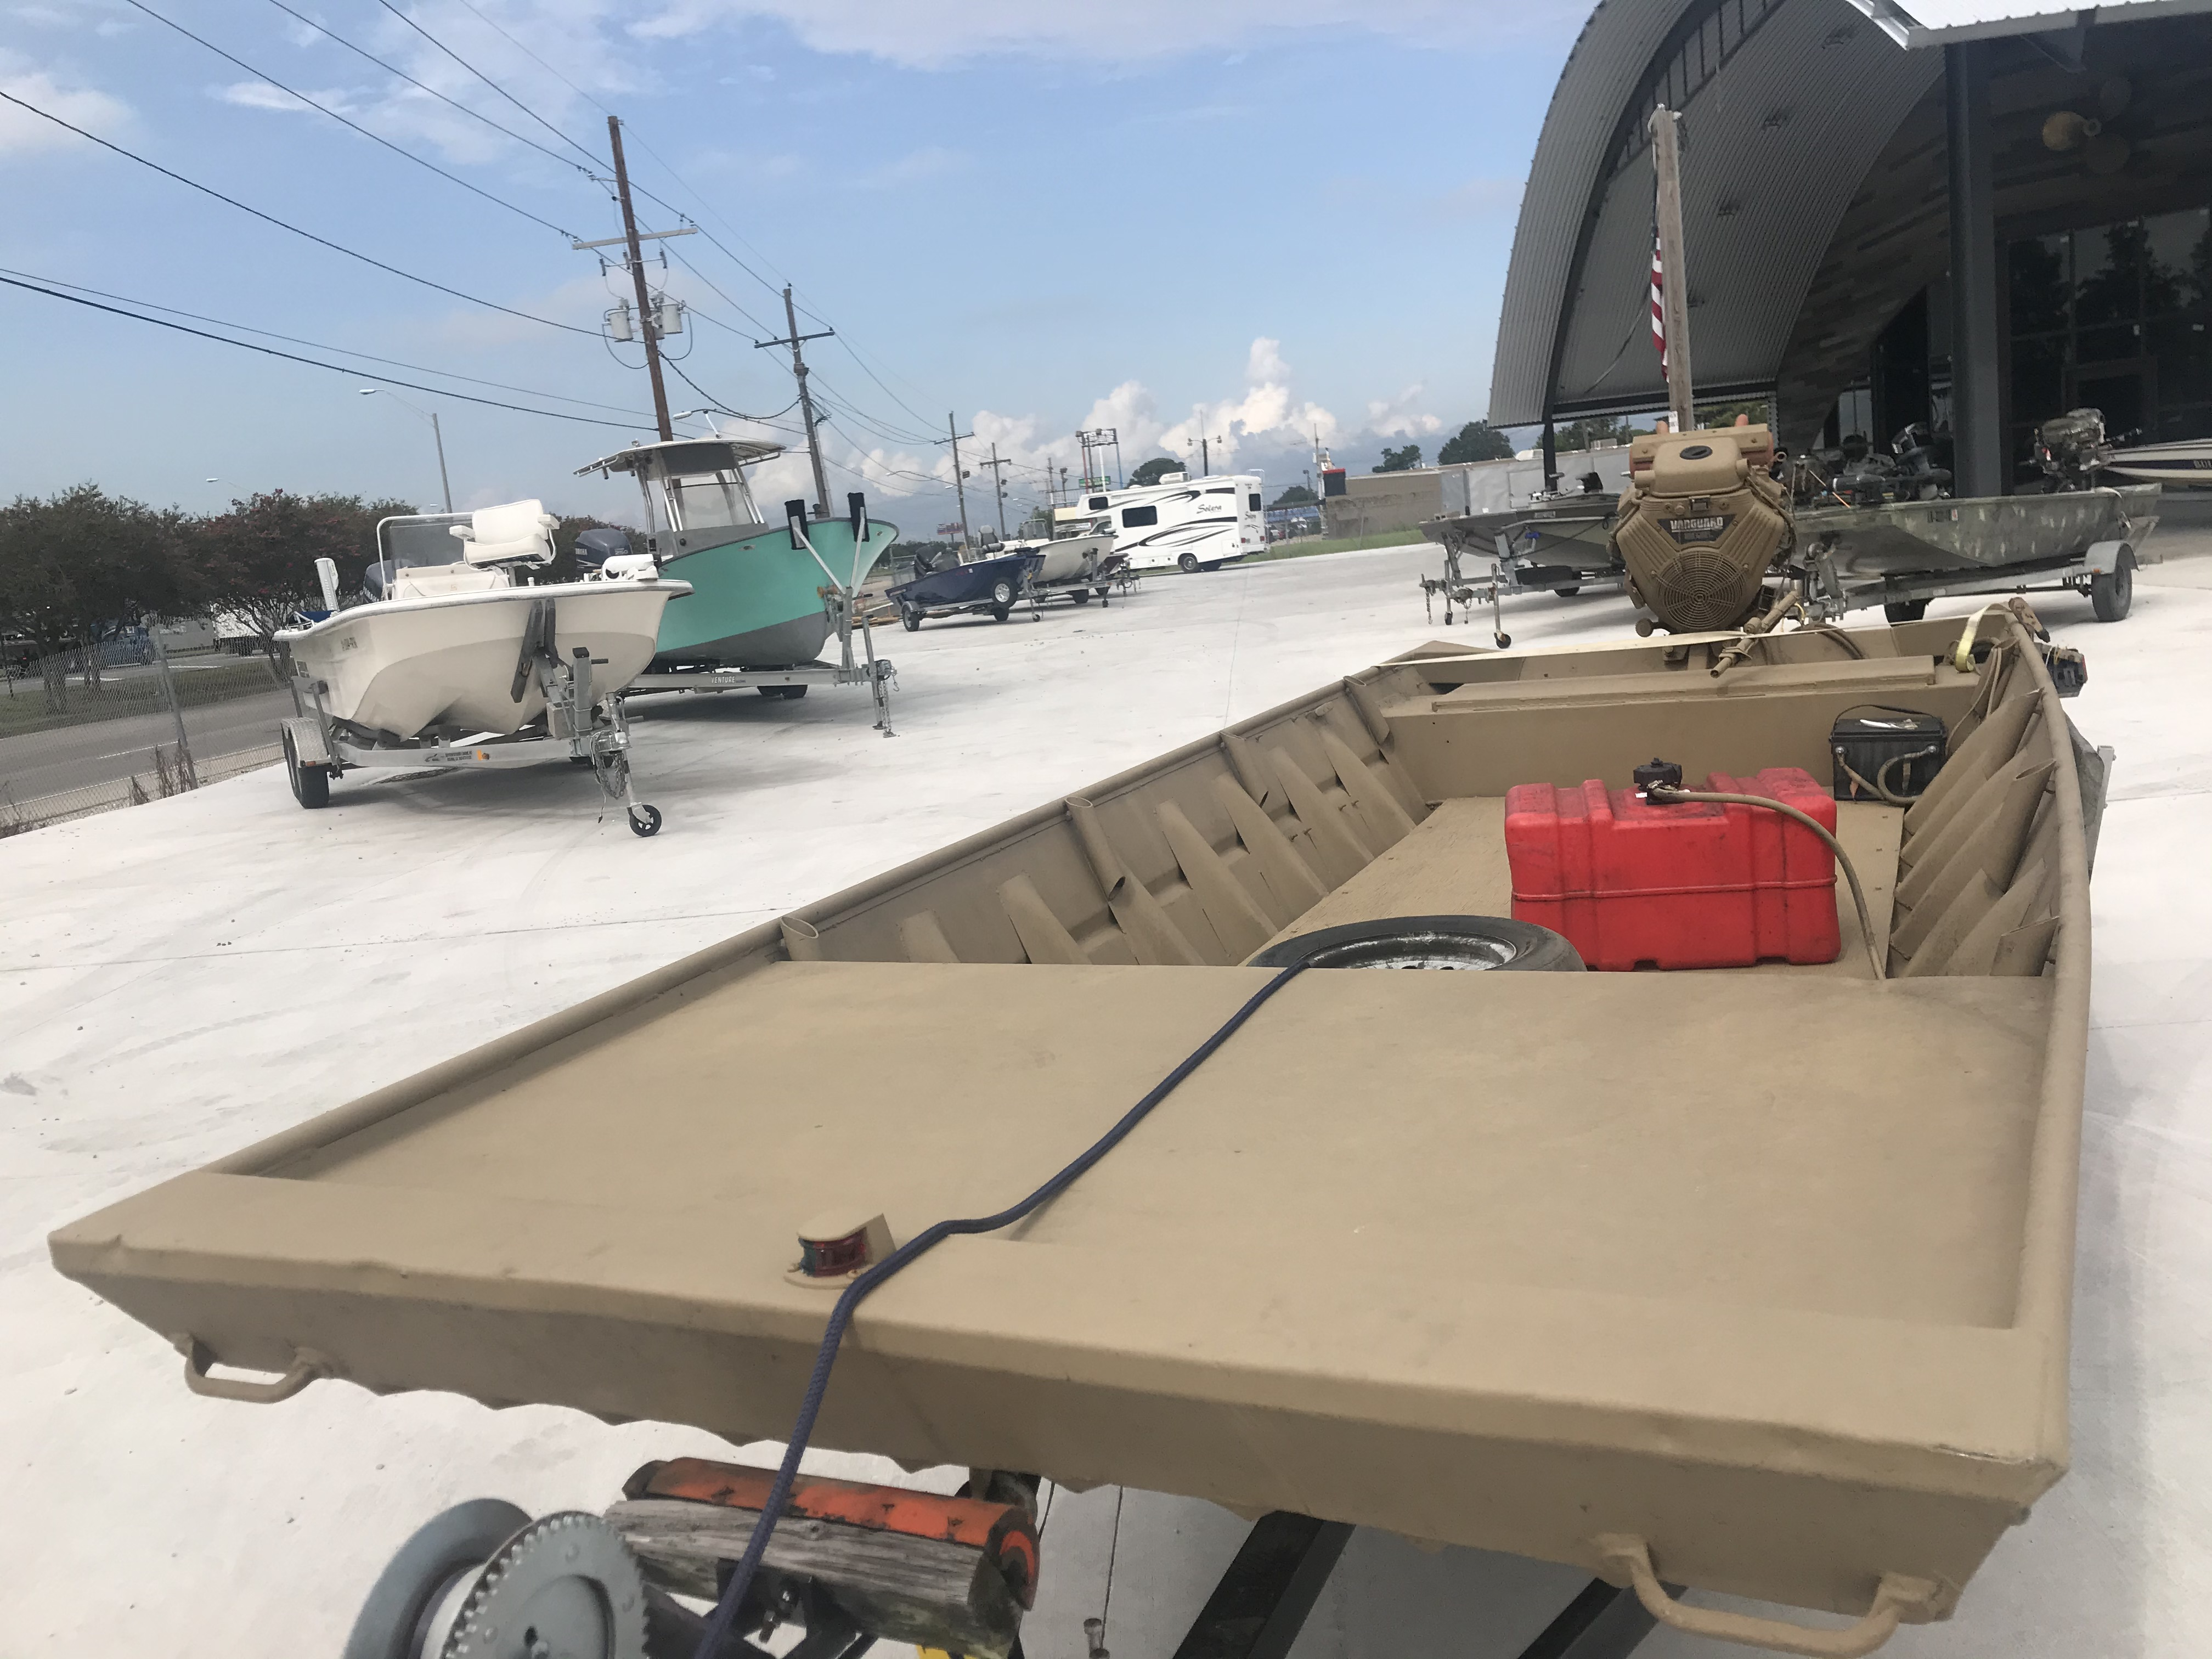 2009 Weldbuilt boat for sale, model of the boat is 17 & Image # 2 of 6